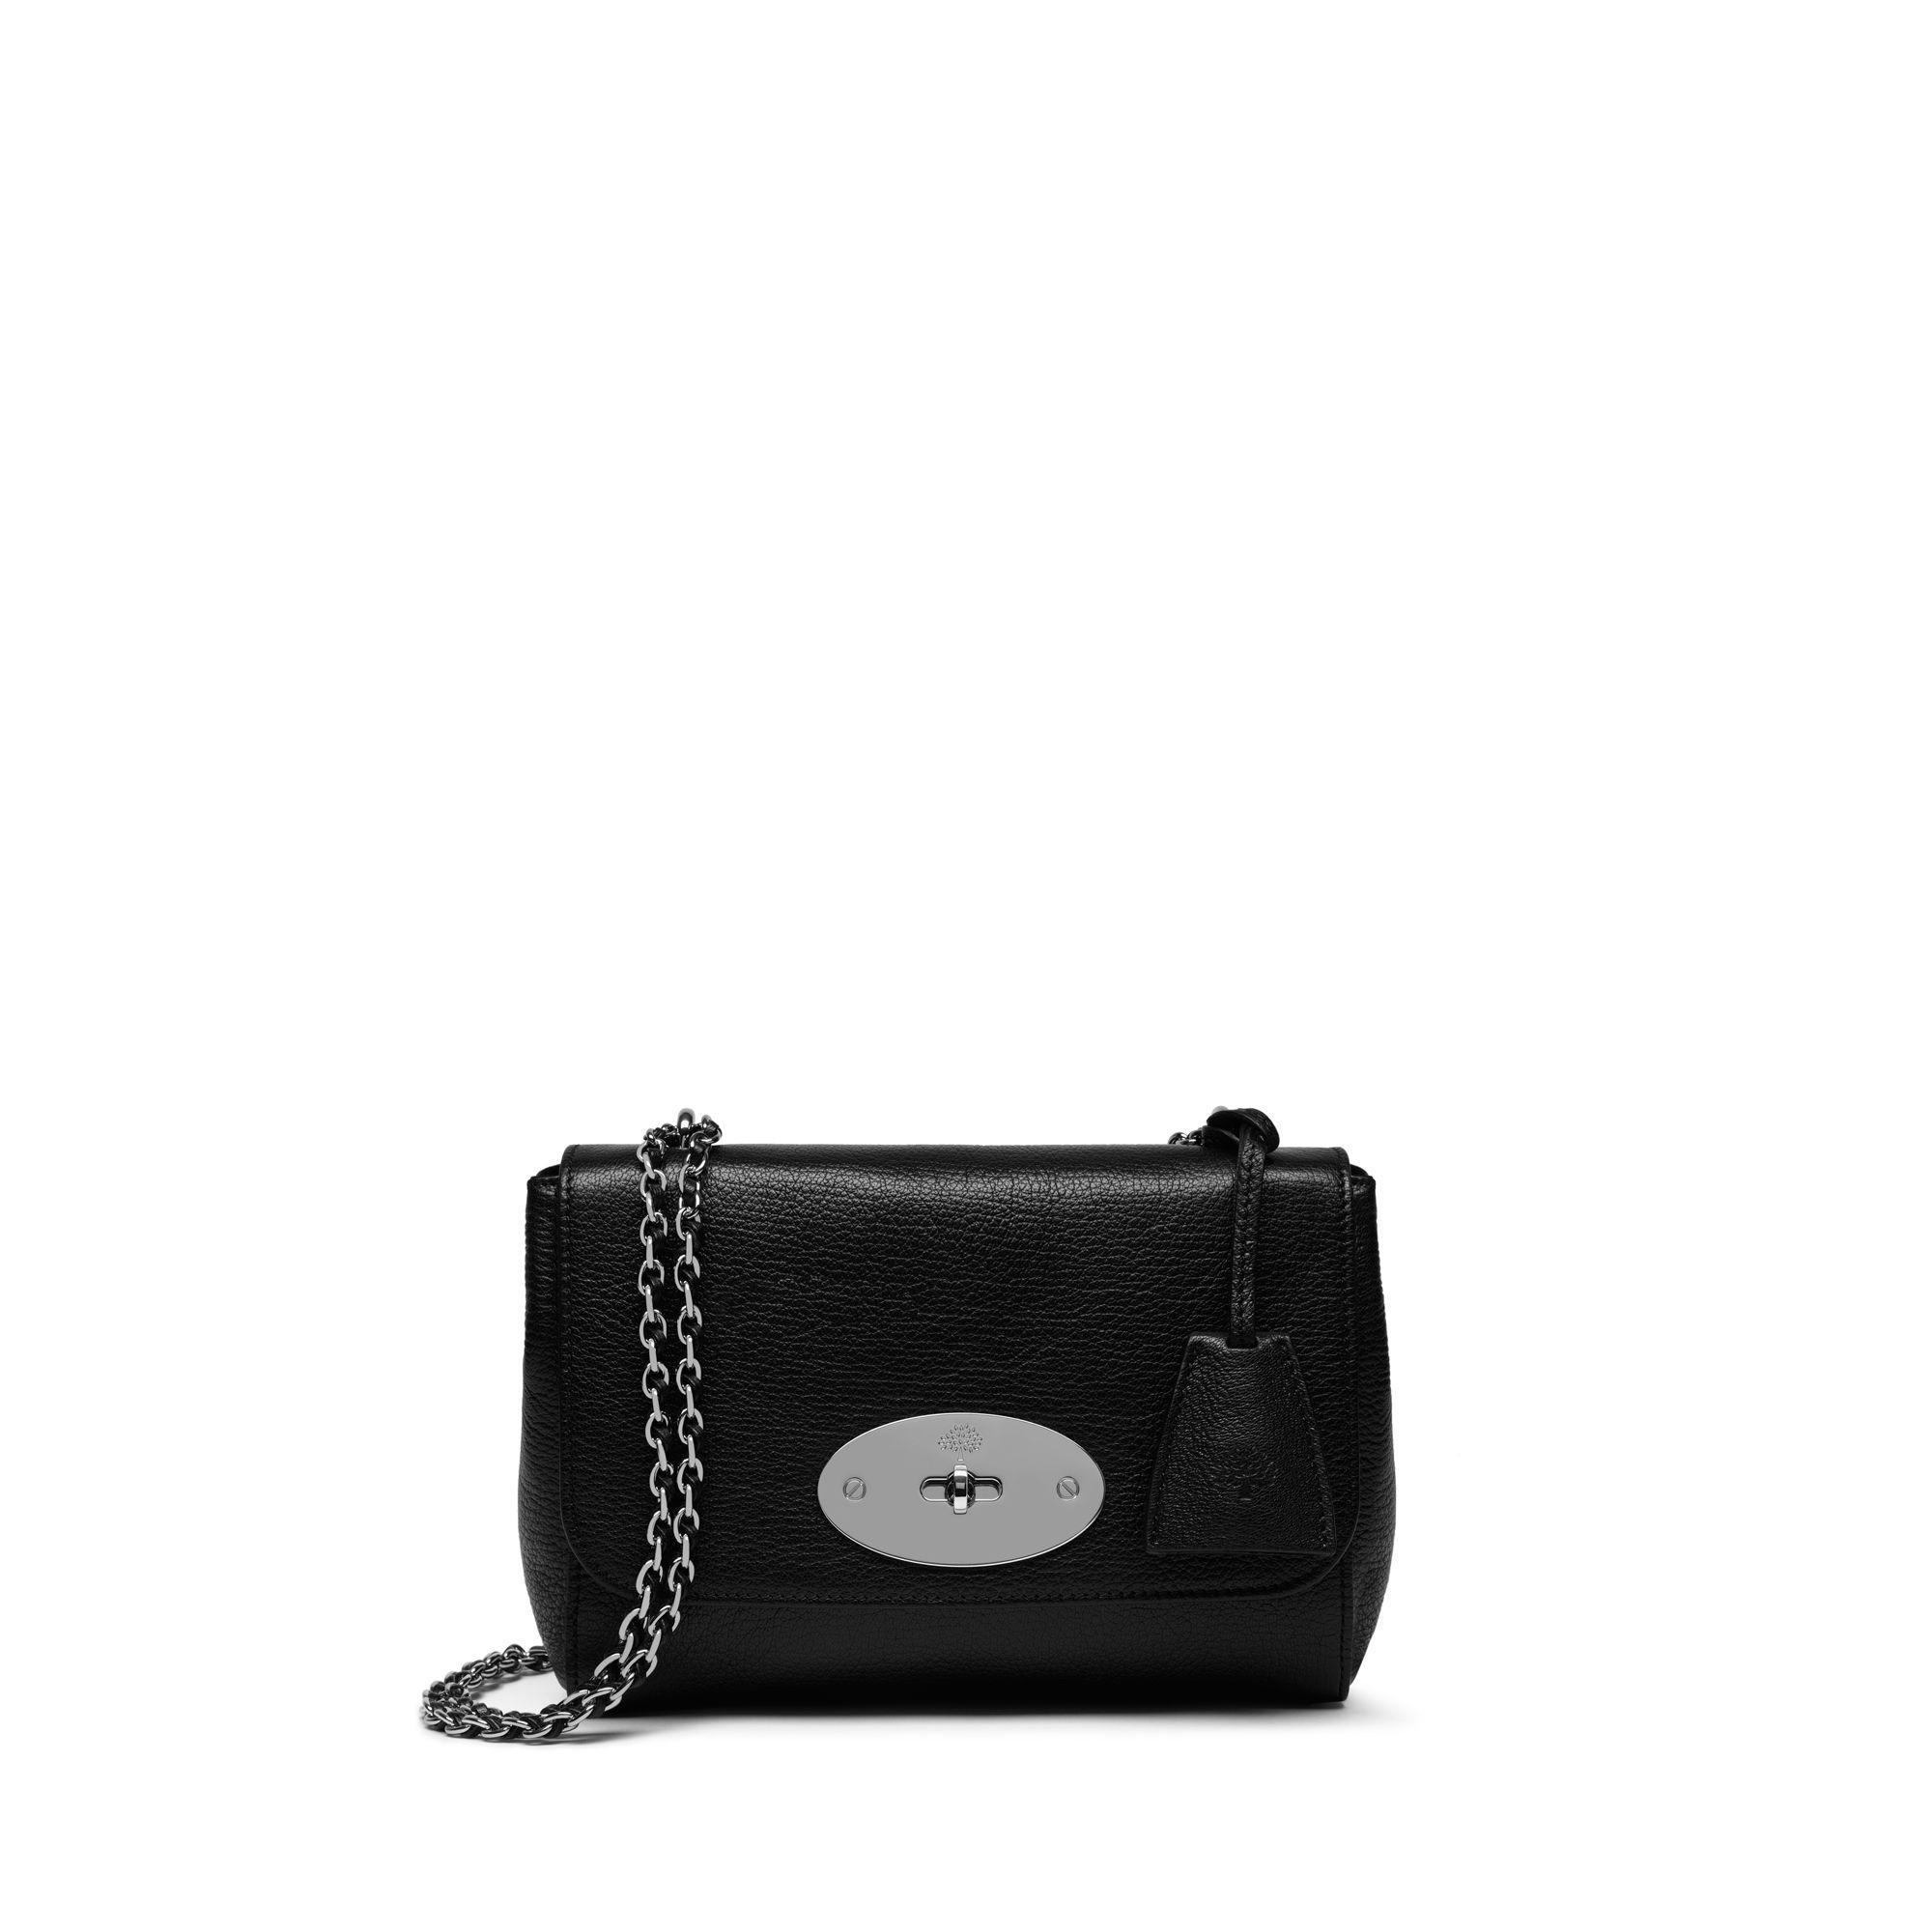 4607bddd1521 Lyst - Mulberry Lily In Black Glossy Goat Leather in Black